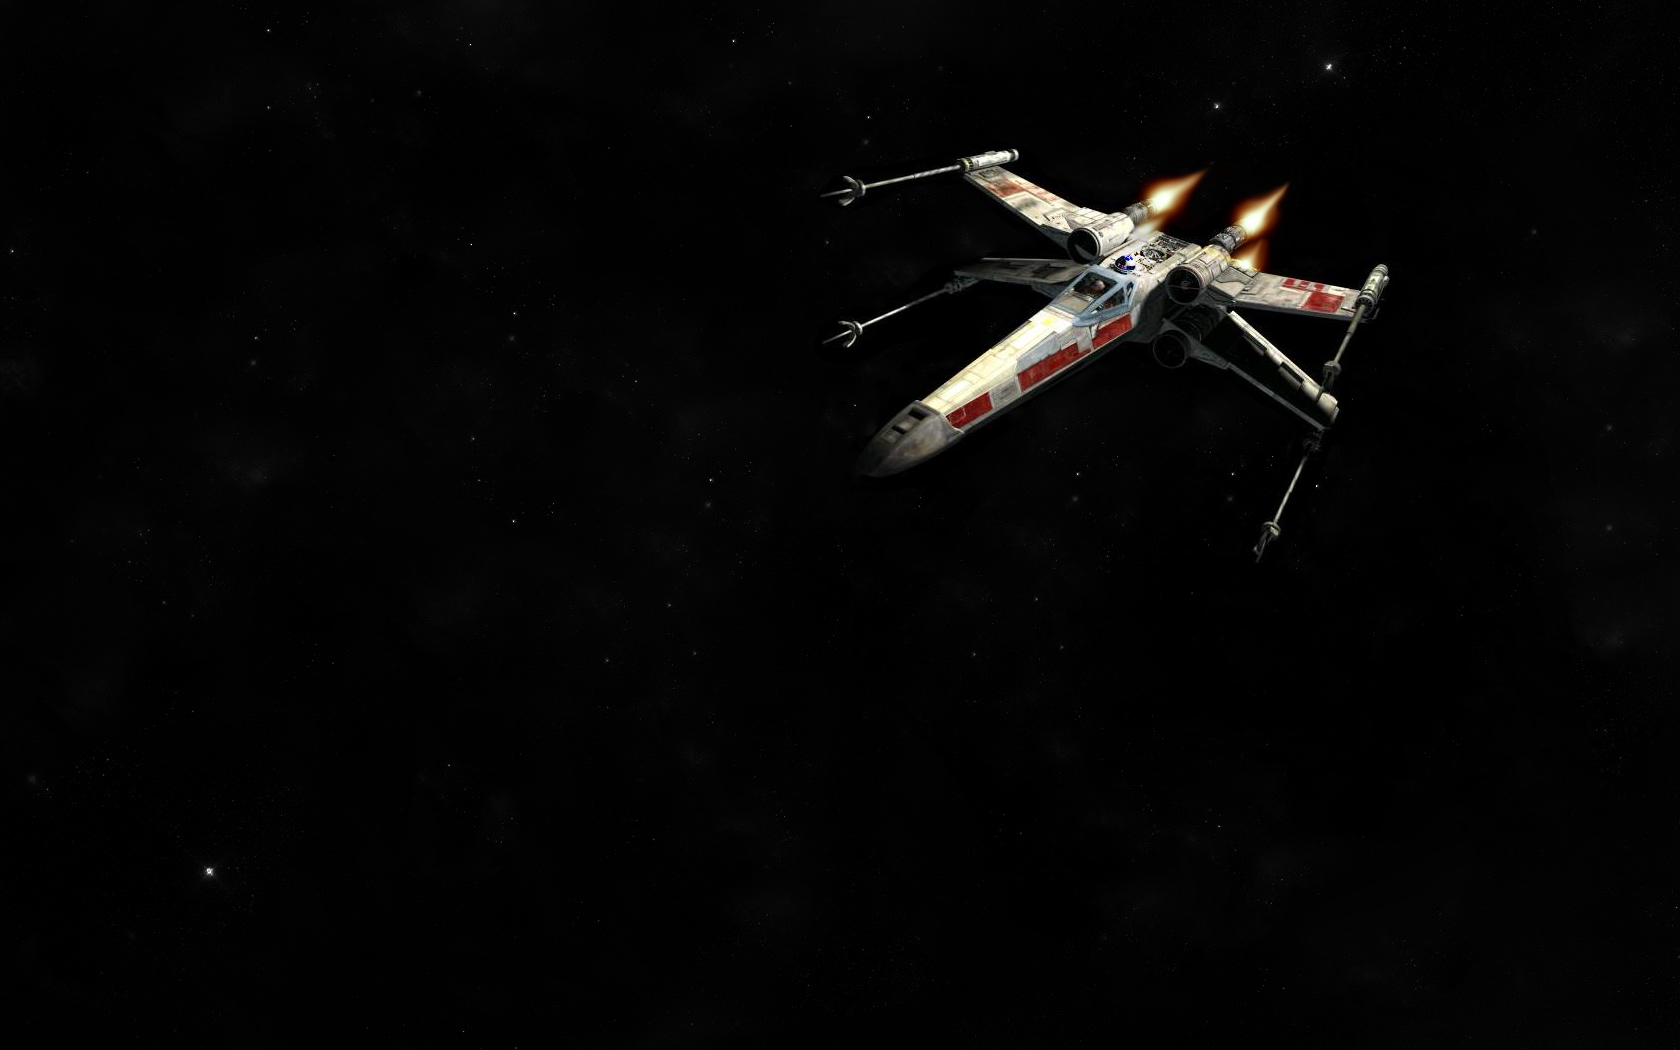 star wars x wing fighter xwing and out 785890 1680x1050